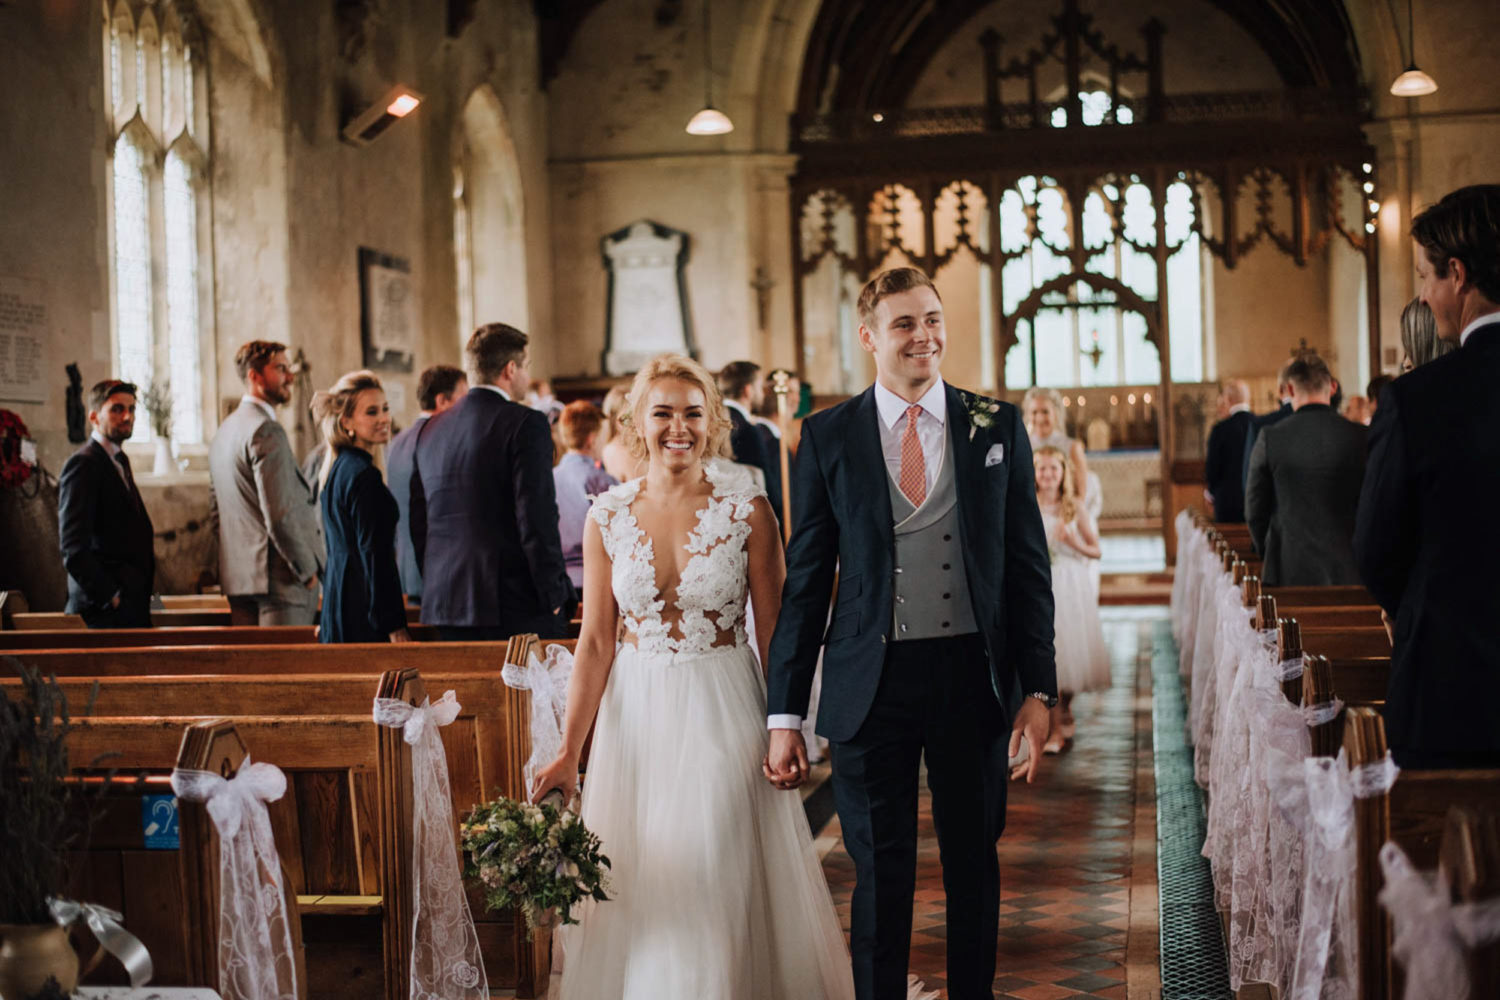 Norfolk_wedding_photos_Megan_Duffield_91